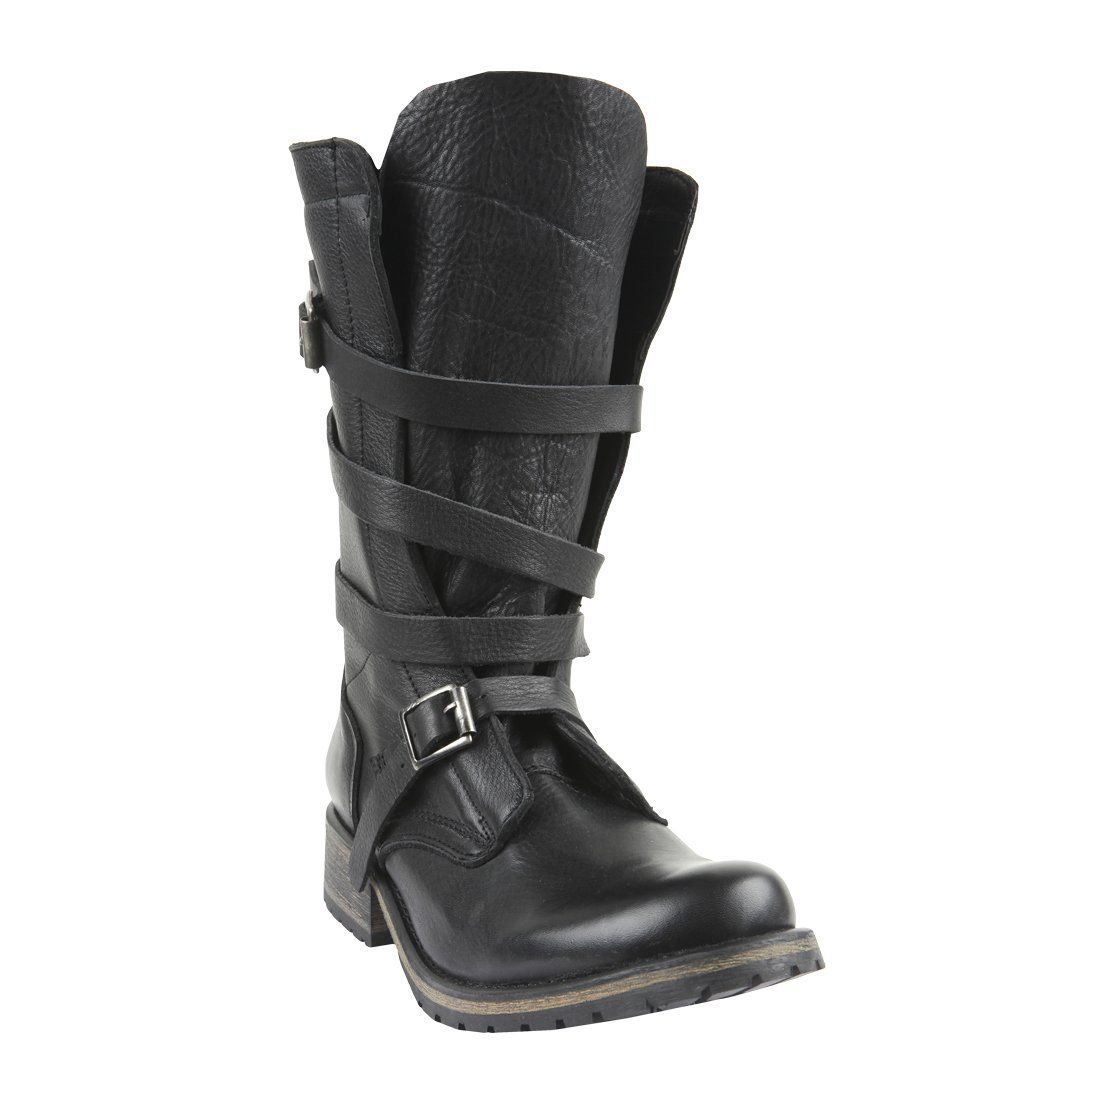 Forum on this topic: Want: Steve Madden Studded BikerBoots, want-steve-madden-studded-bikerboots/